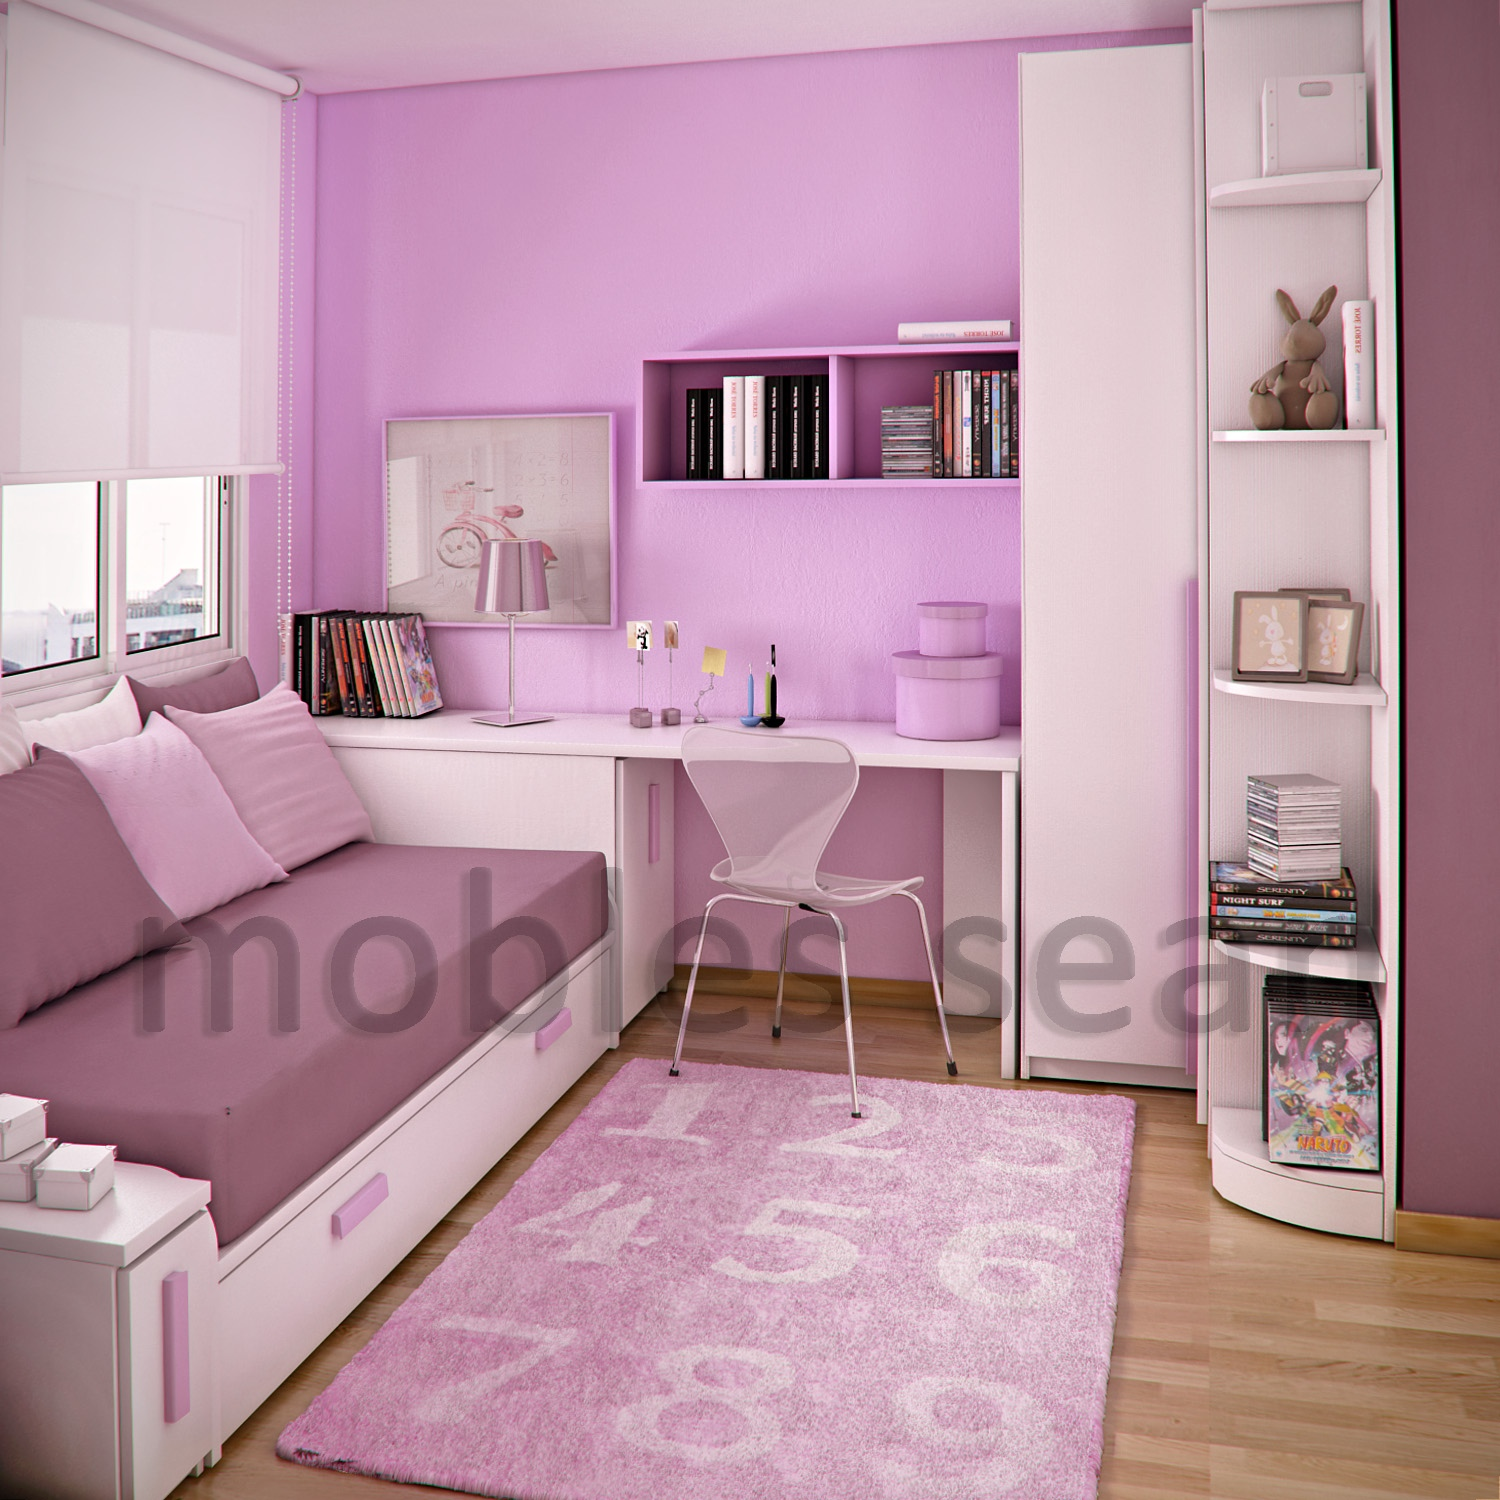 Space Saving Designs For Small Kids Rooms Girl Room Ideas For Small Rooms